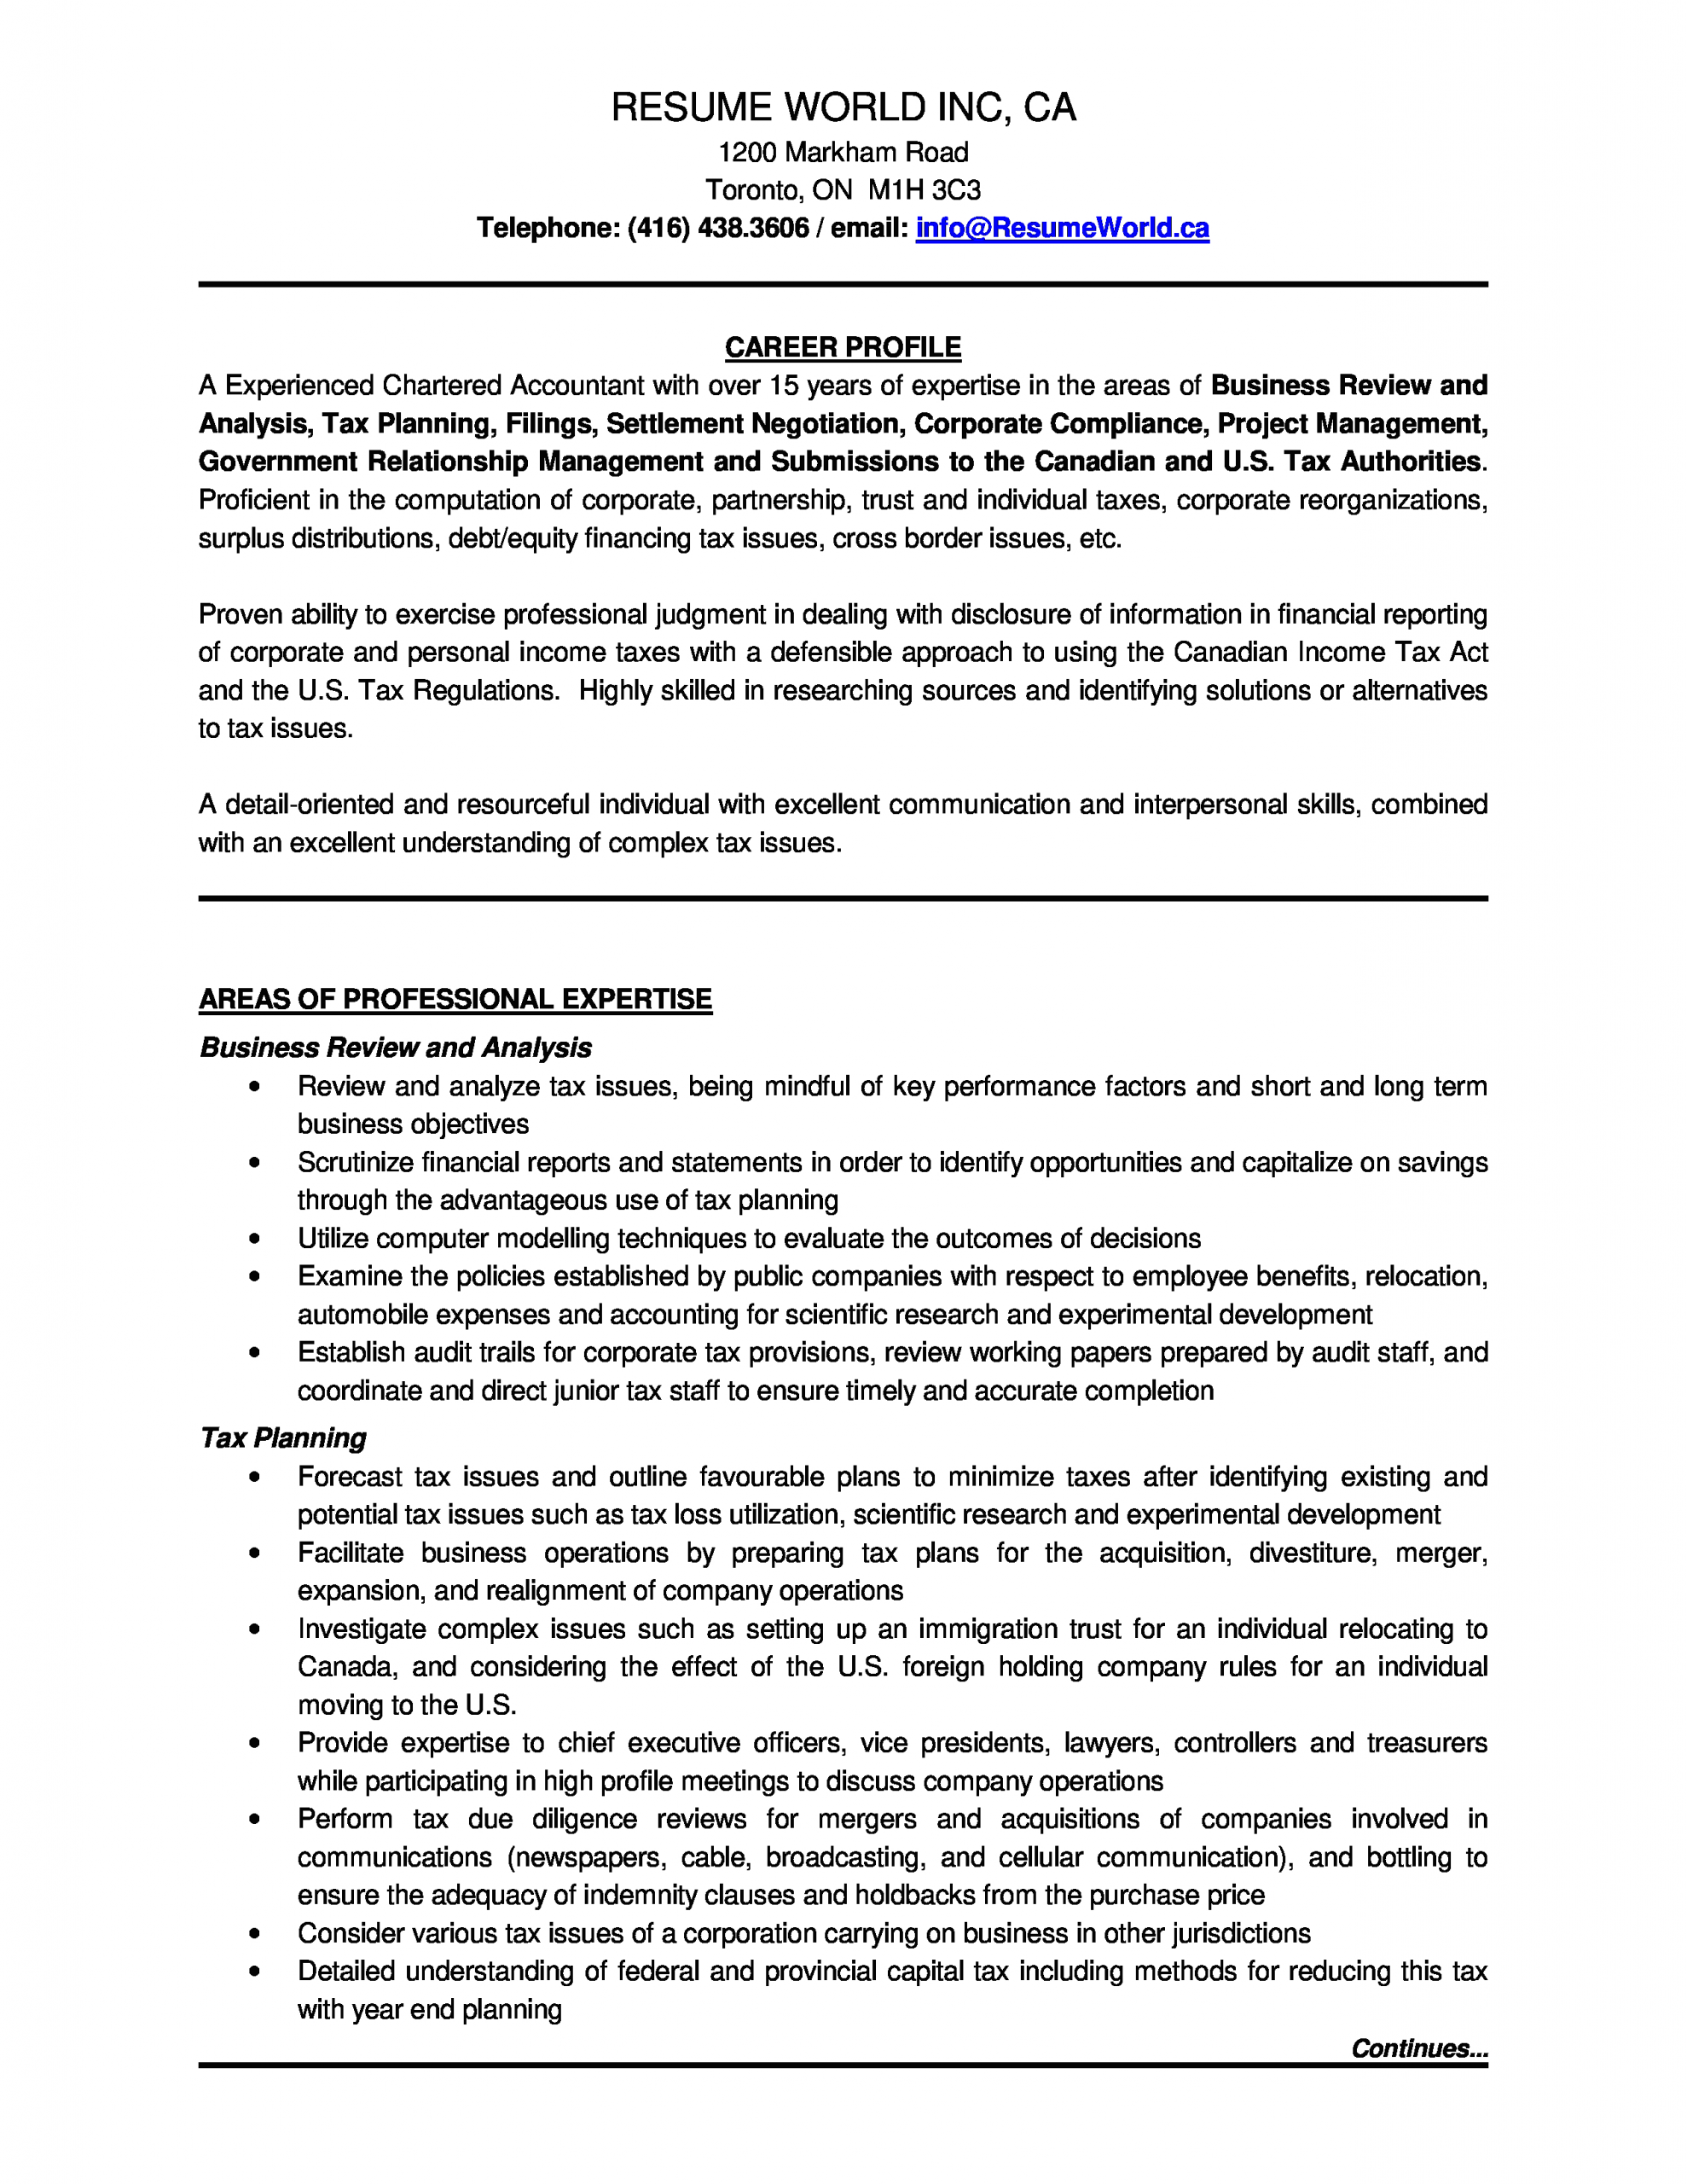 Sample Resume for Experienced Chartered Accountant Experienced Chartered Accountant Resume How to Draft An